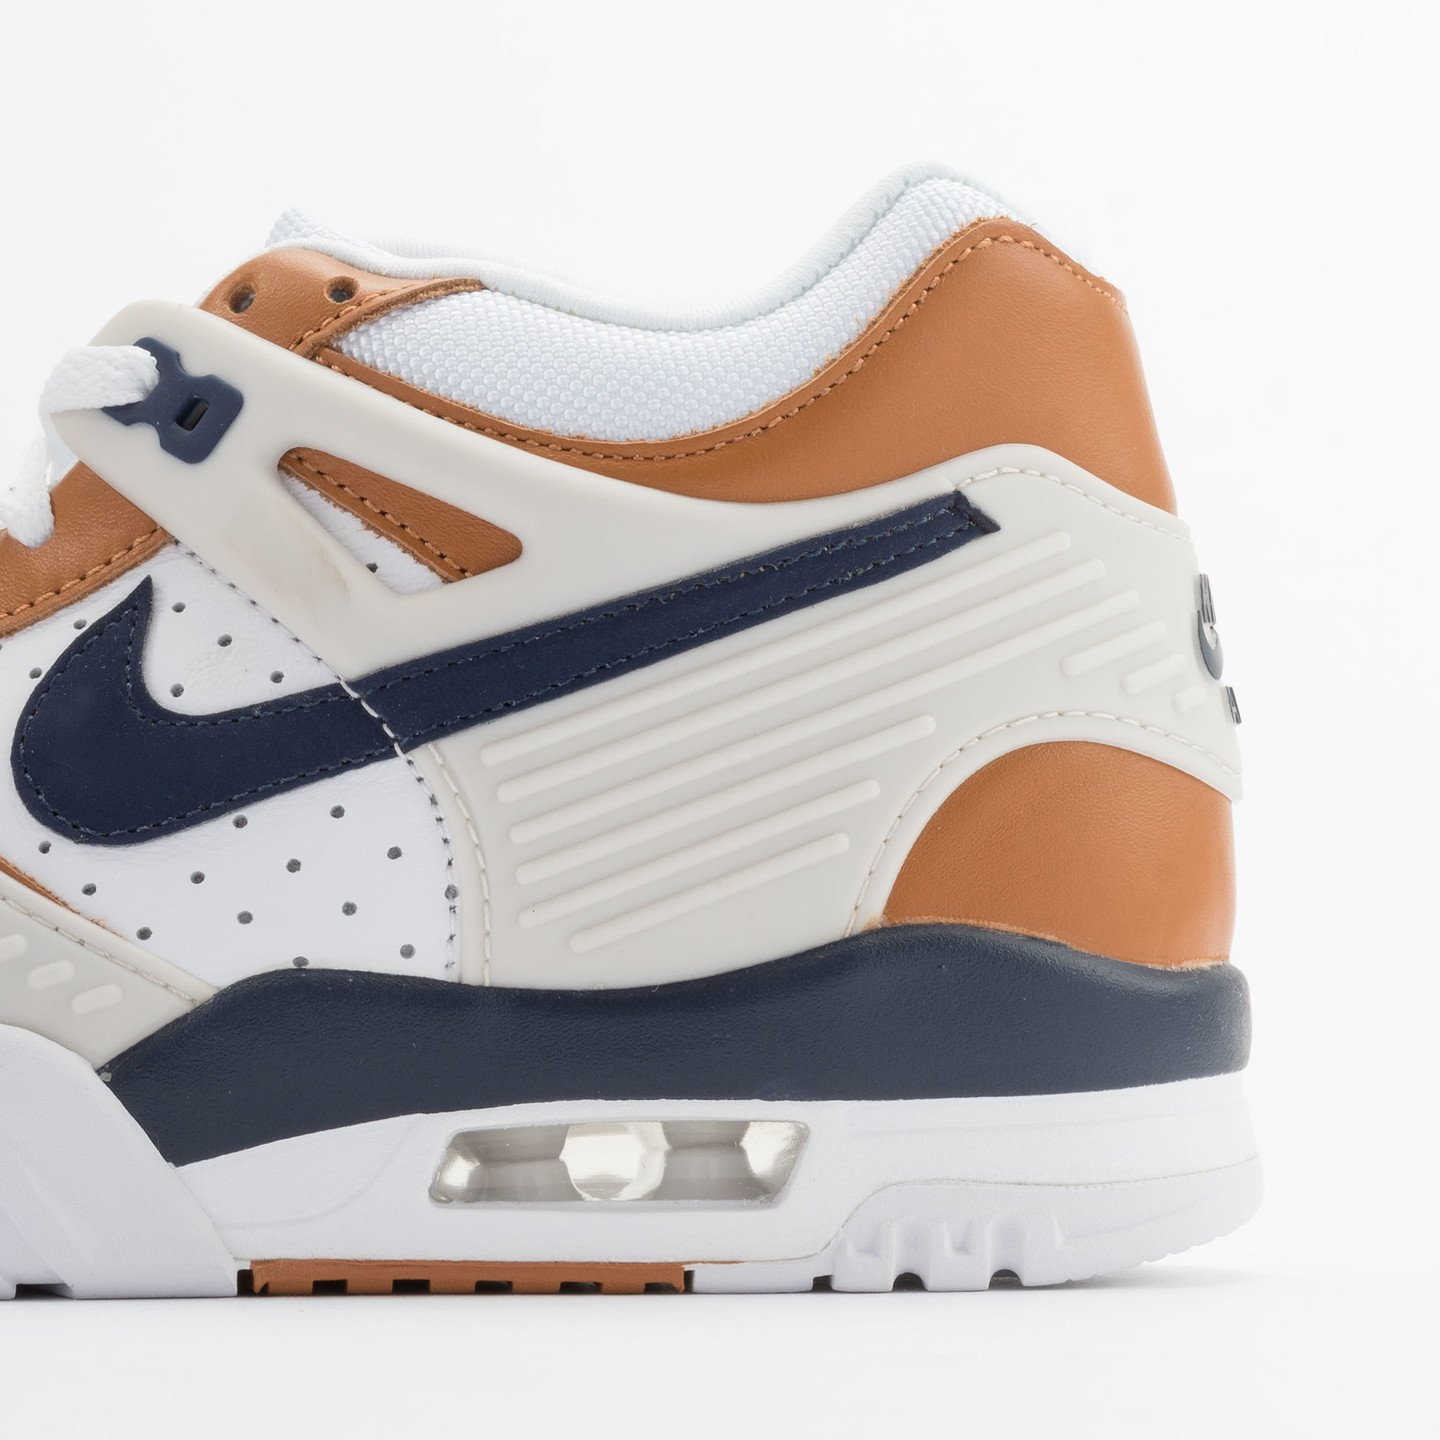 Nike Air Trainer 3 Premium Medicine Ball White/Mid Navy-Gngr-Lght Bn 705425-100-40